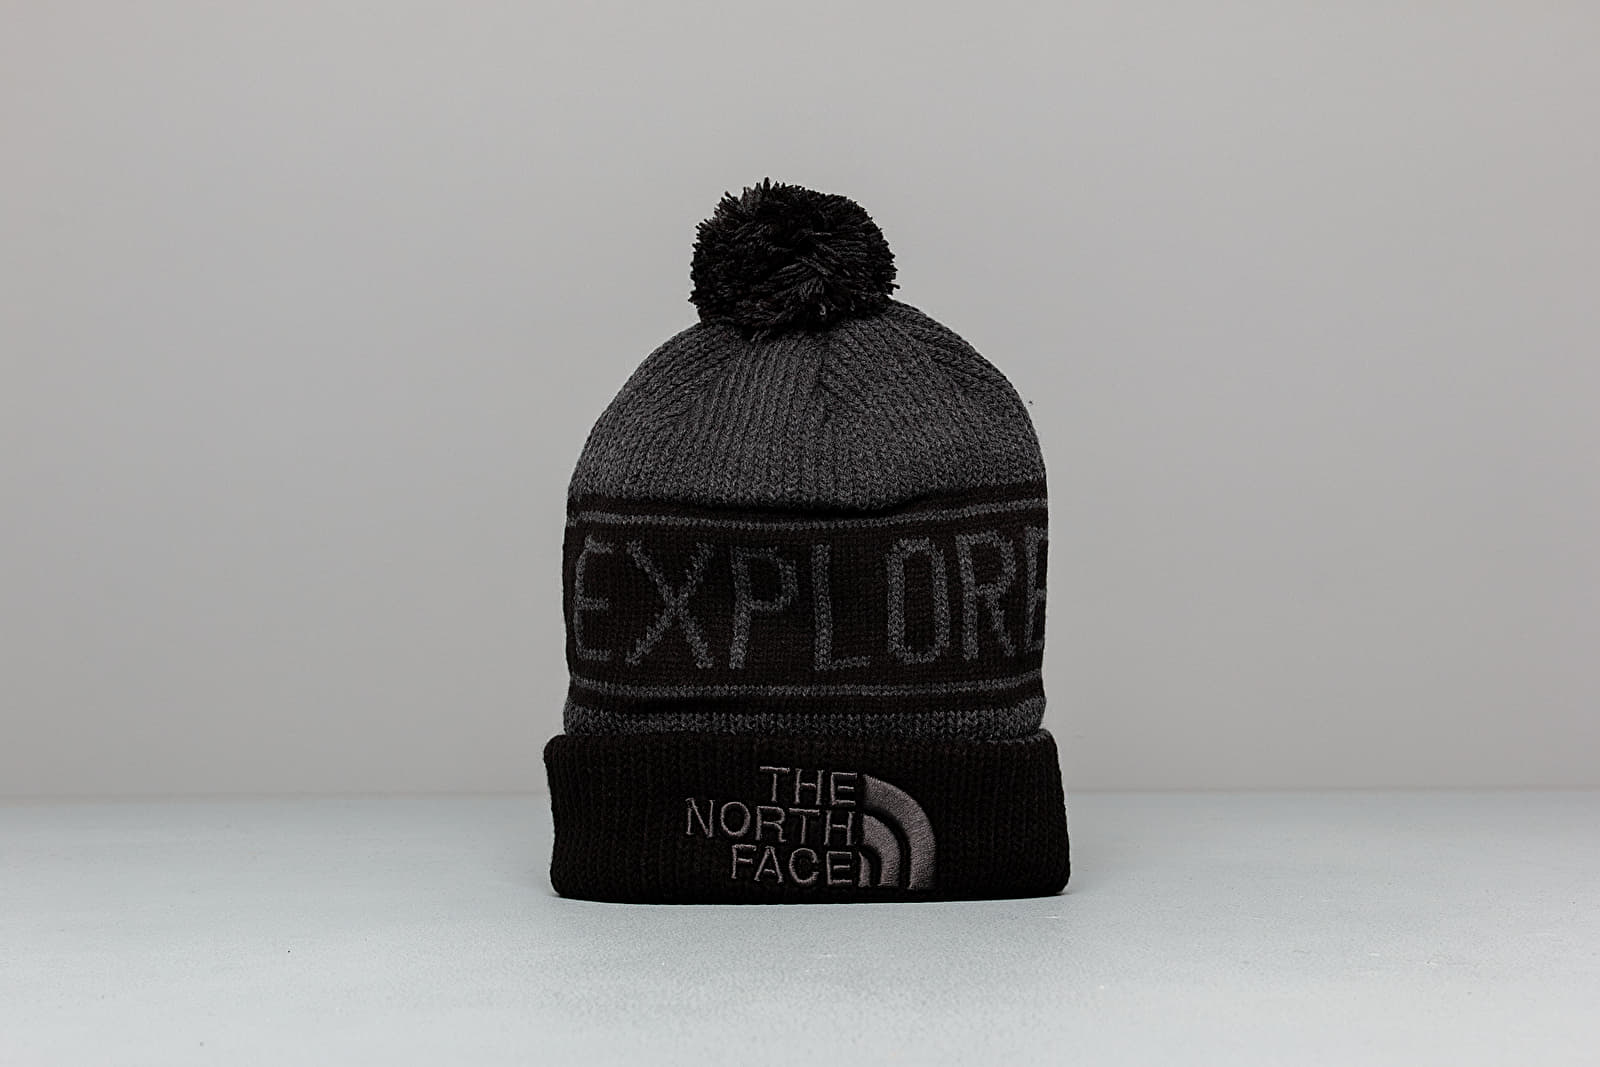 The North Face Retro Beanie